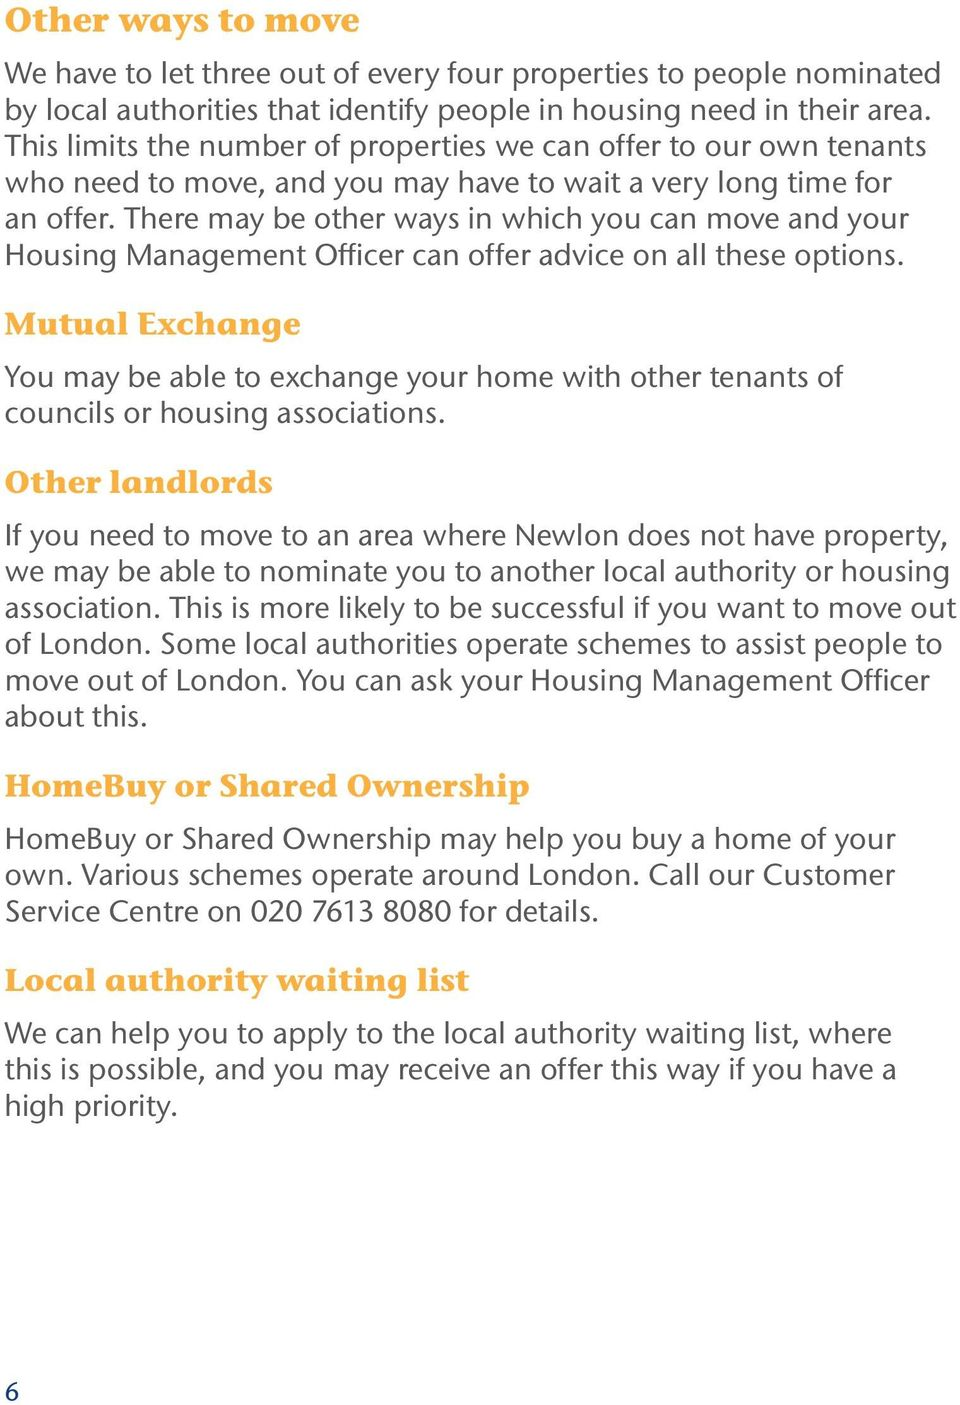 There may be other ways in which you can move and your Housing Management Officer can offer advice on all these options.